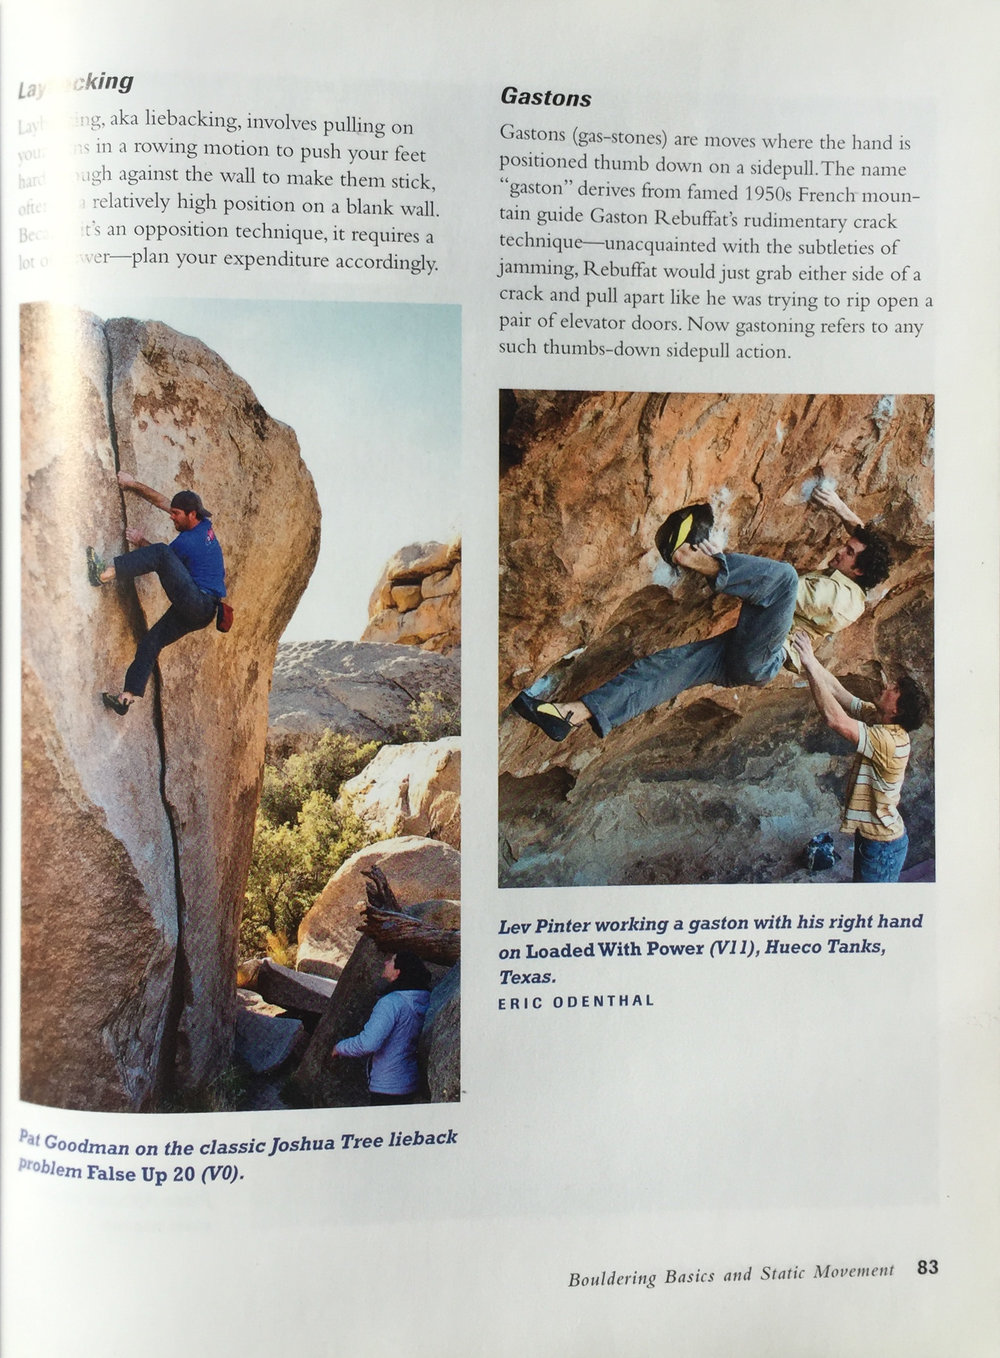 HOW TO BOULDER BY JOHN SHERMAN  CLIMBER | LEV PINTER (RIGHT)  AREA | HUECO TANKS | TEXAS  PHOTO | ERIC ODENTHAL